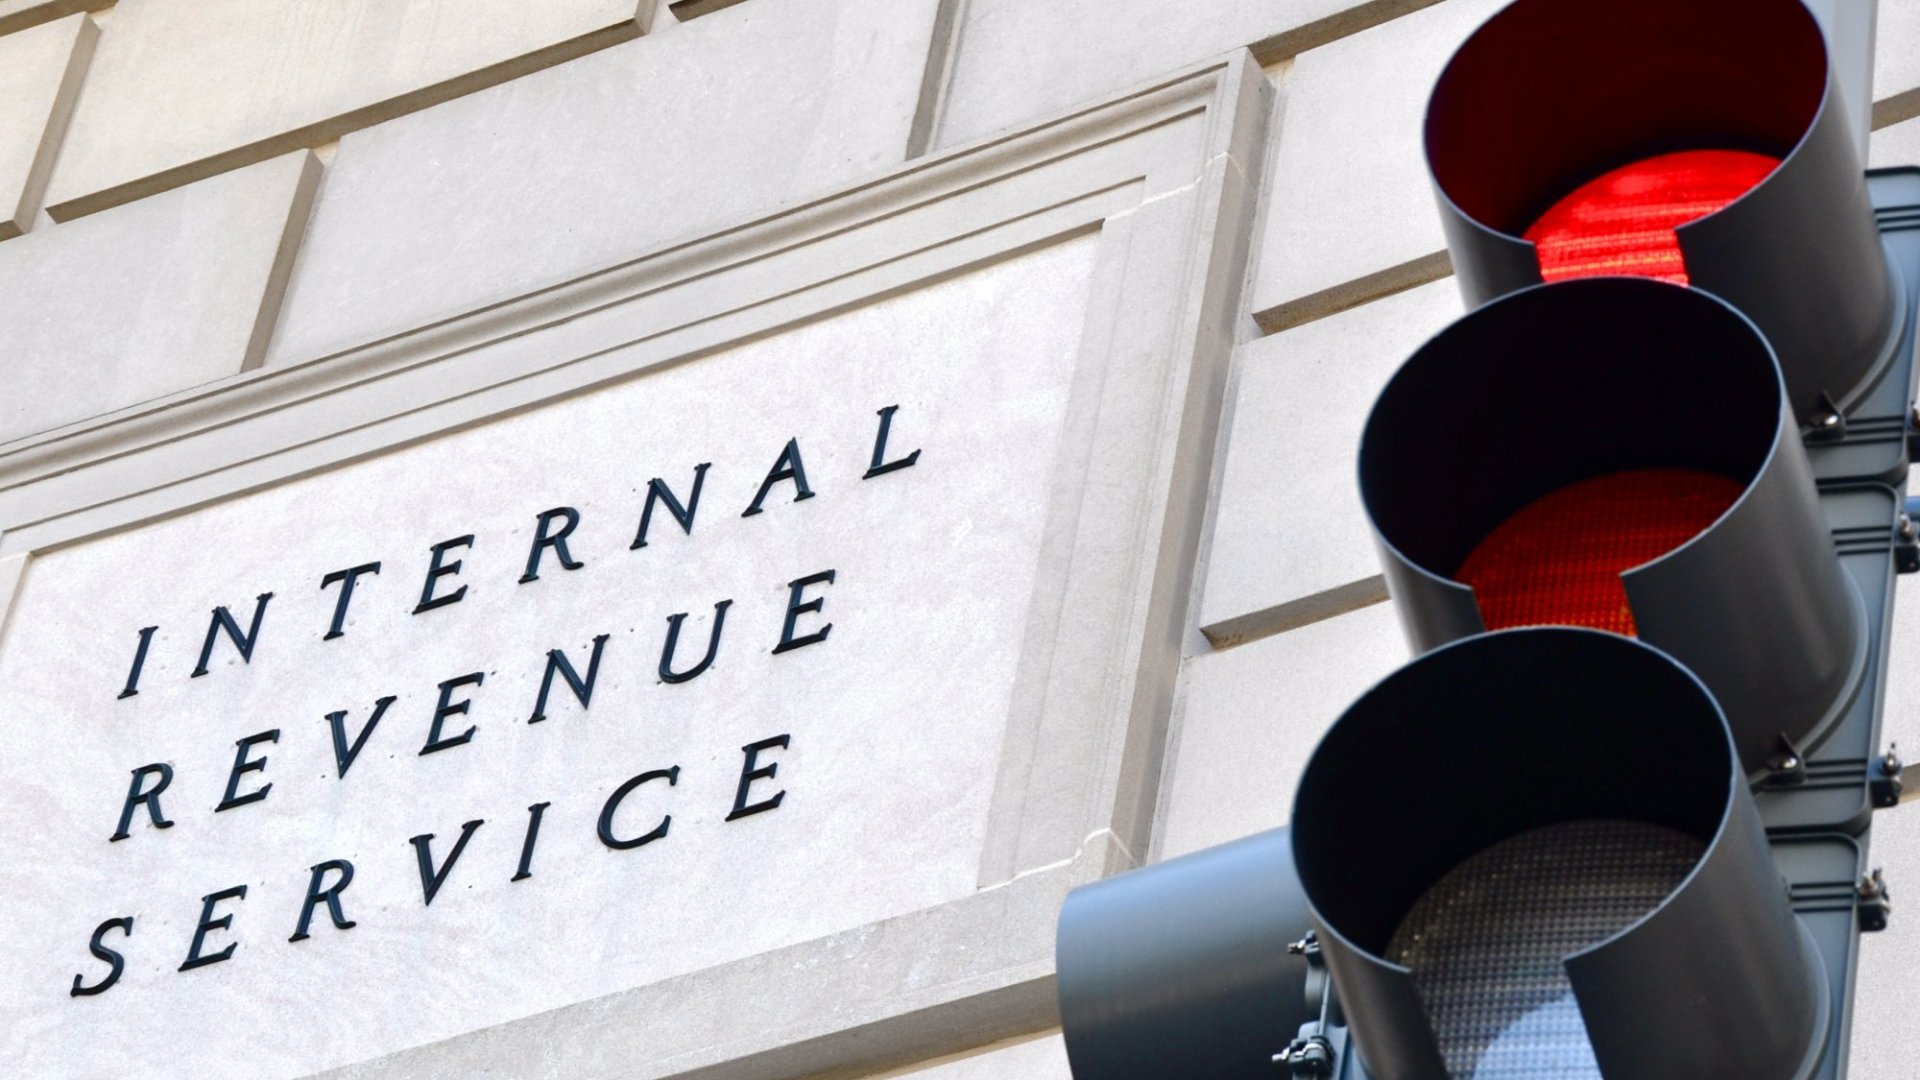 A new iteration of the IRS scam has been hitting U.S. taxpayers.